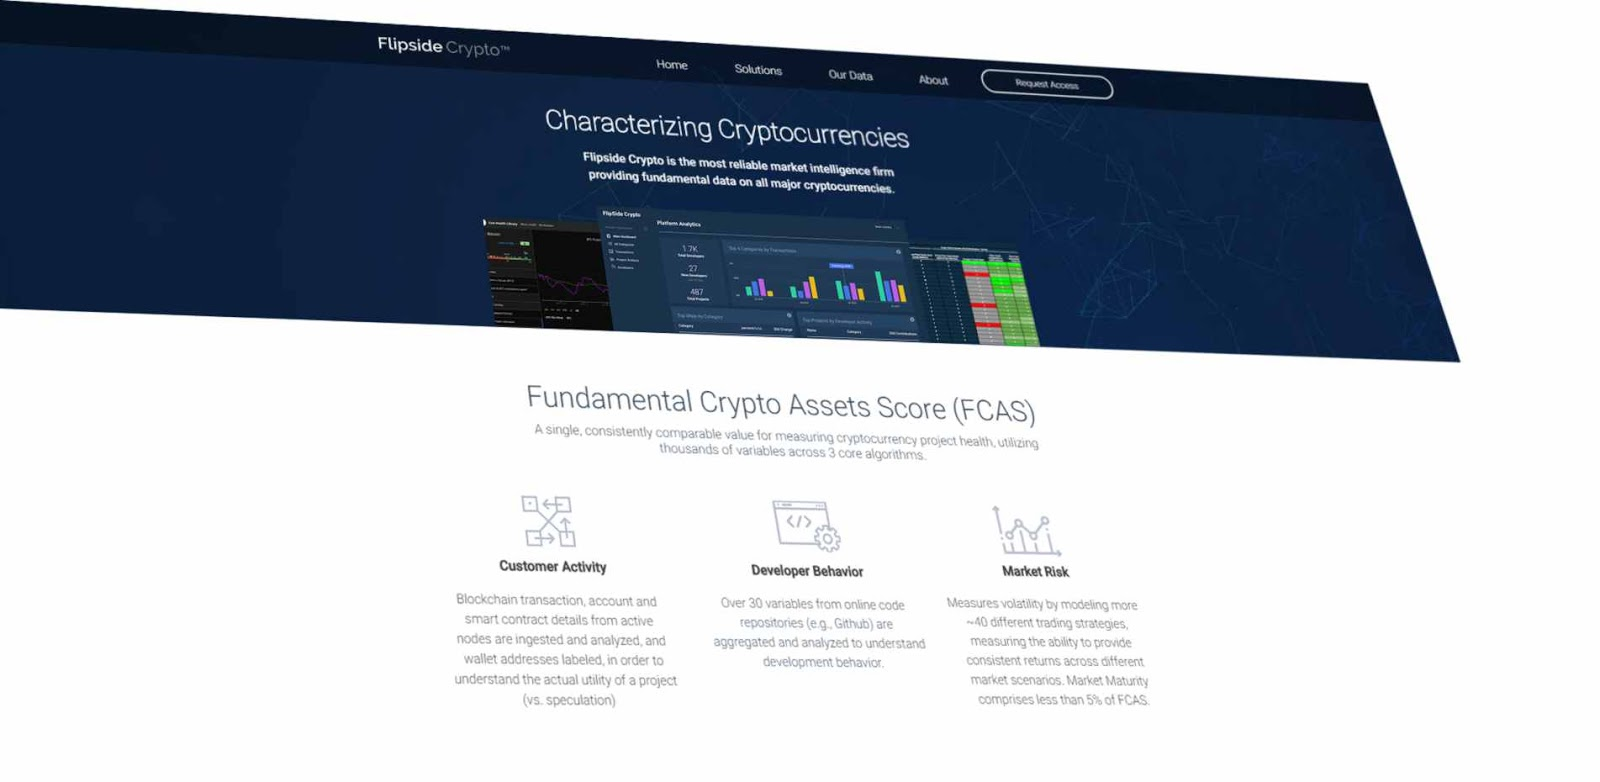 coinmarketcap cryptocurrency tracker tool